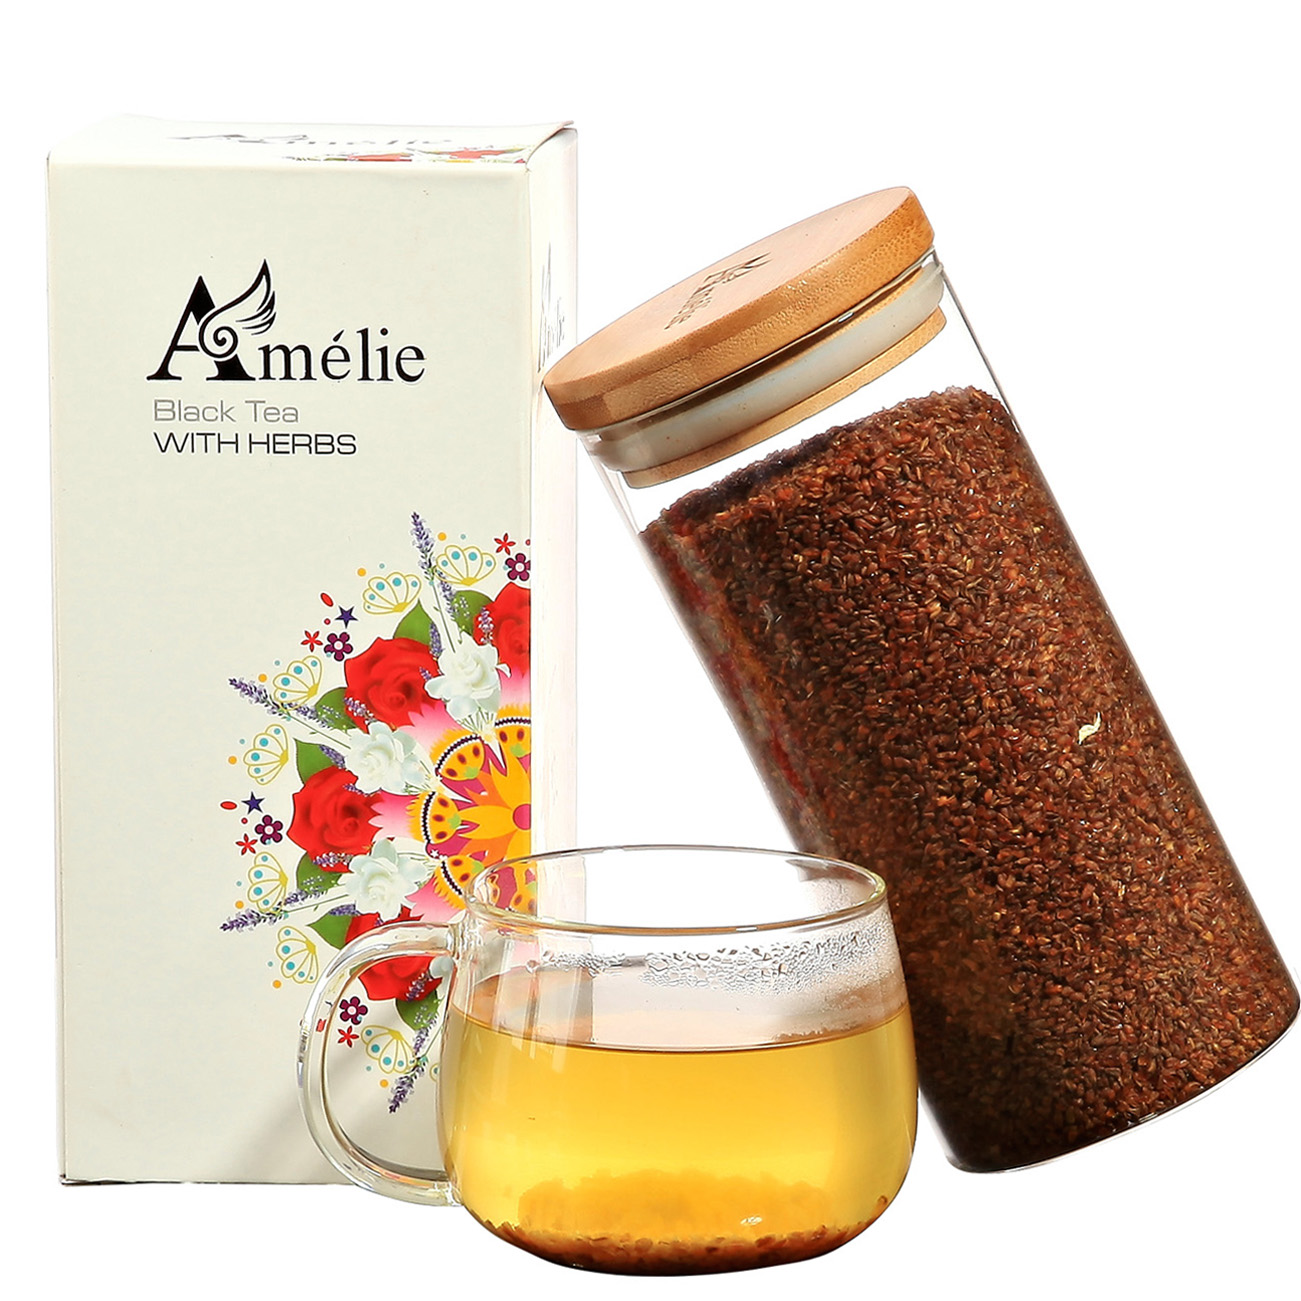 Amelie herbal tea buckwheat tea black buckwheat tea 500g/tank